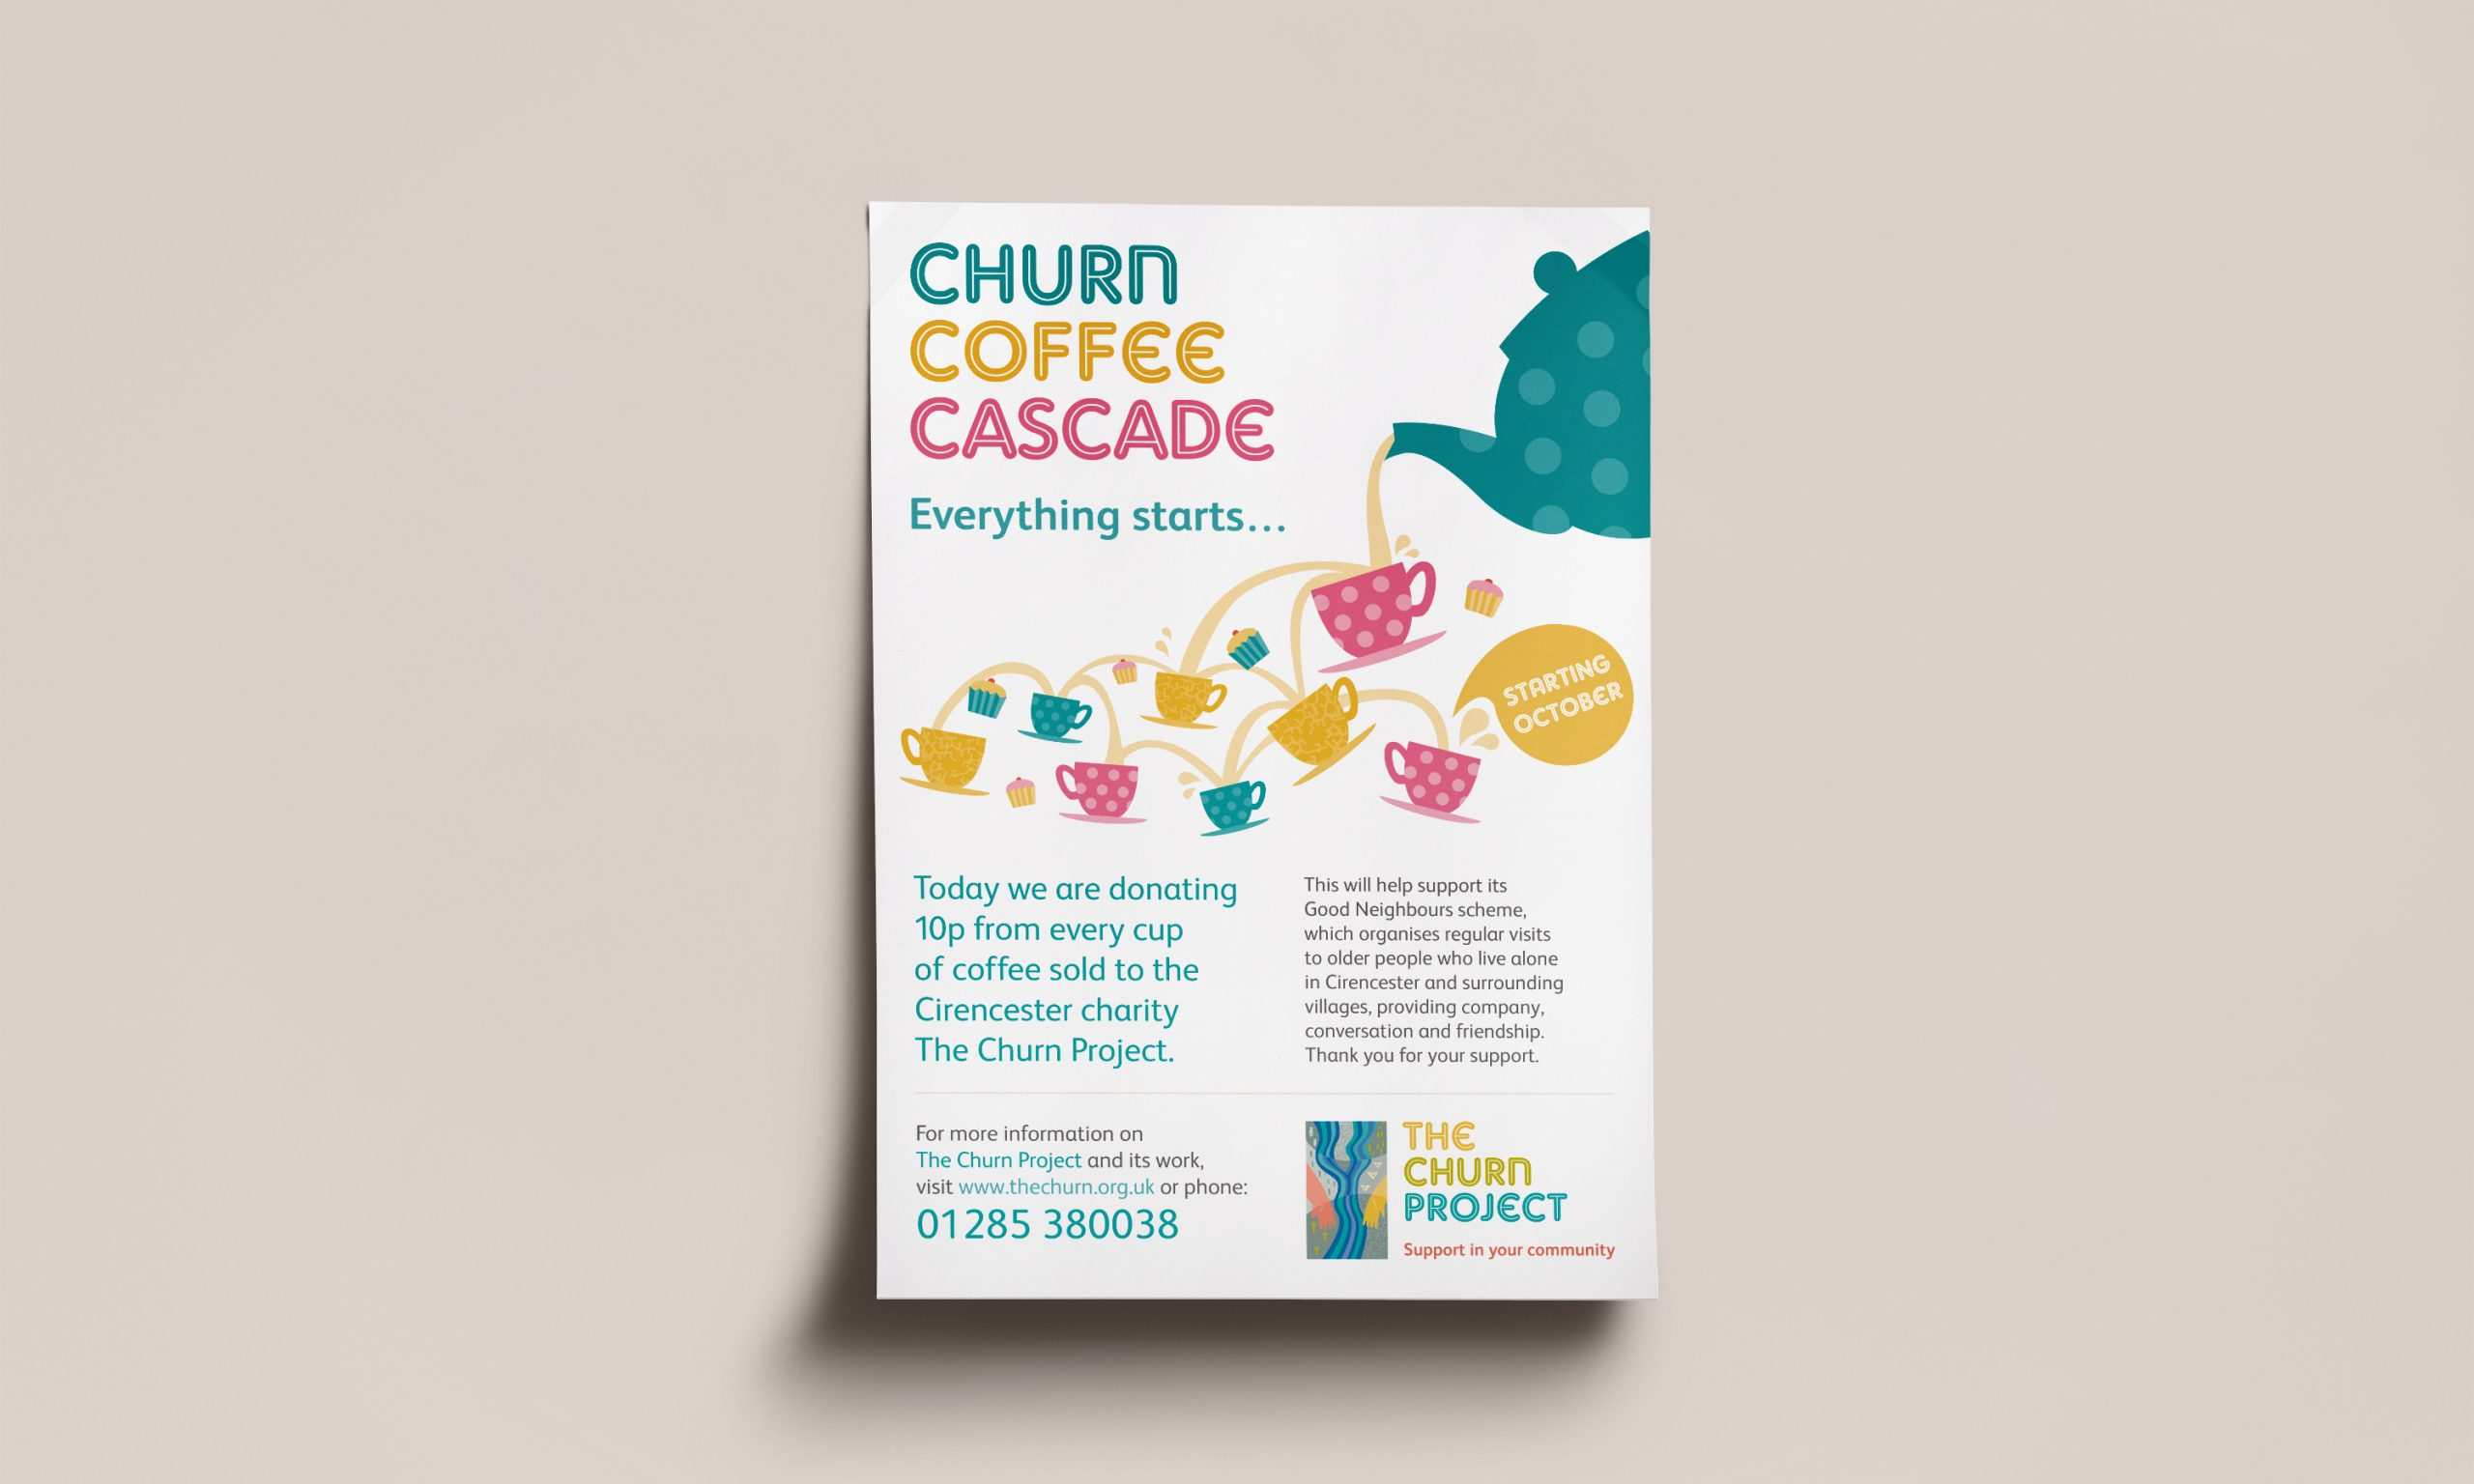 The Churn Project - Charity poster